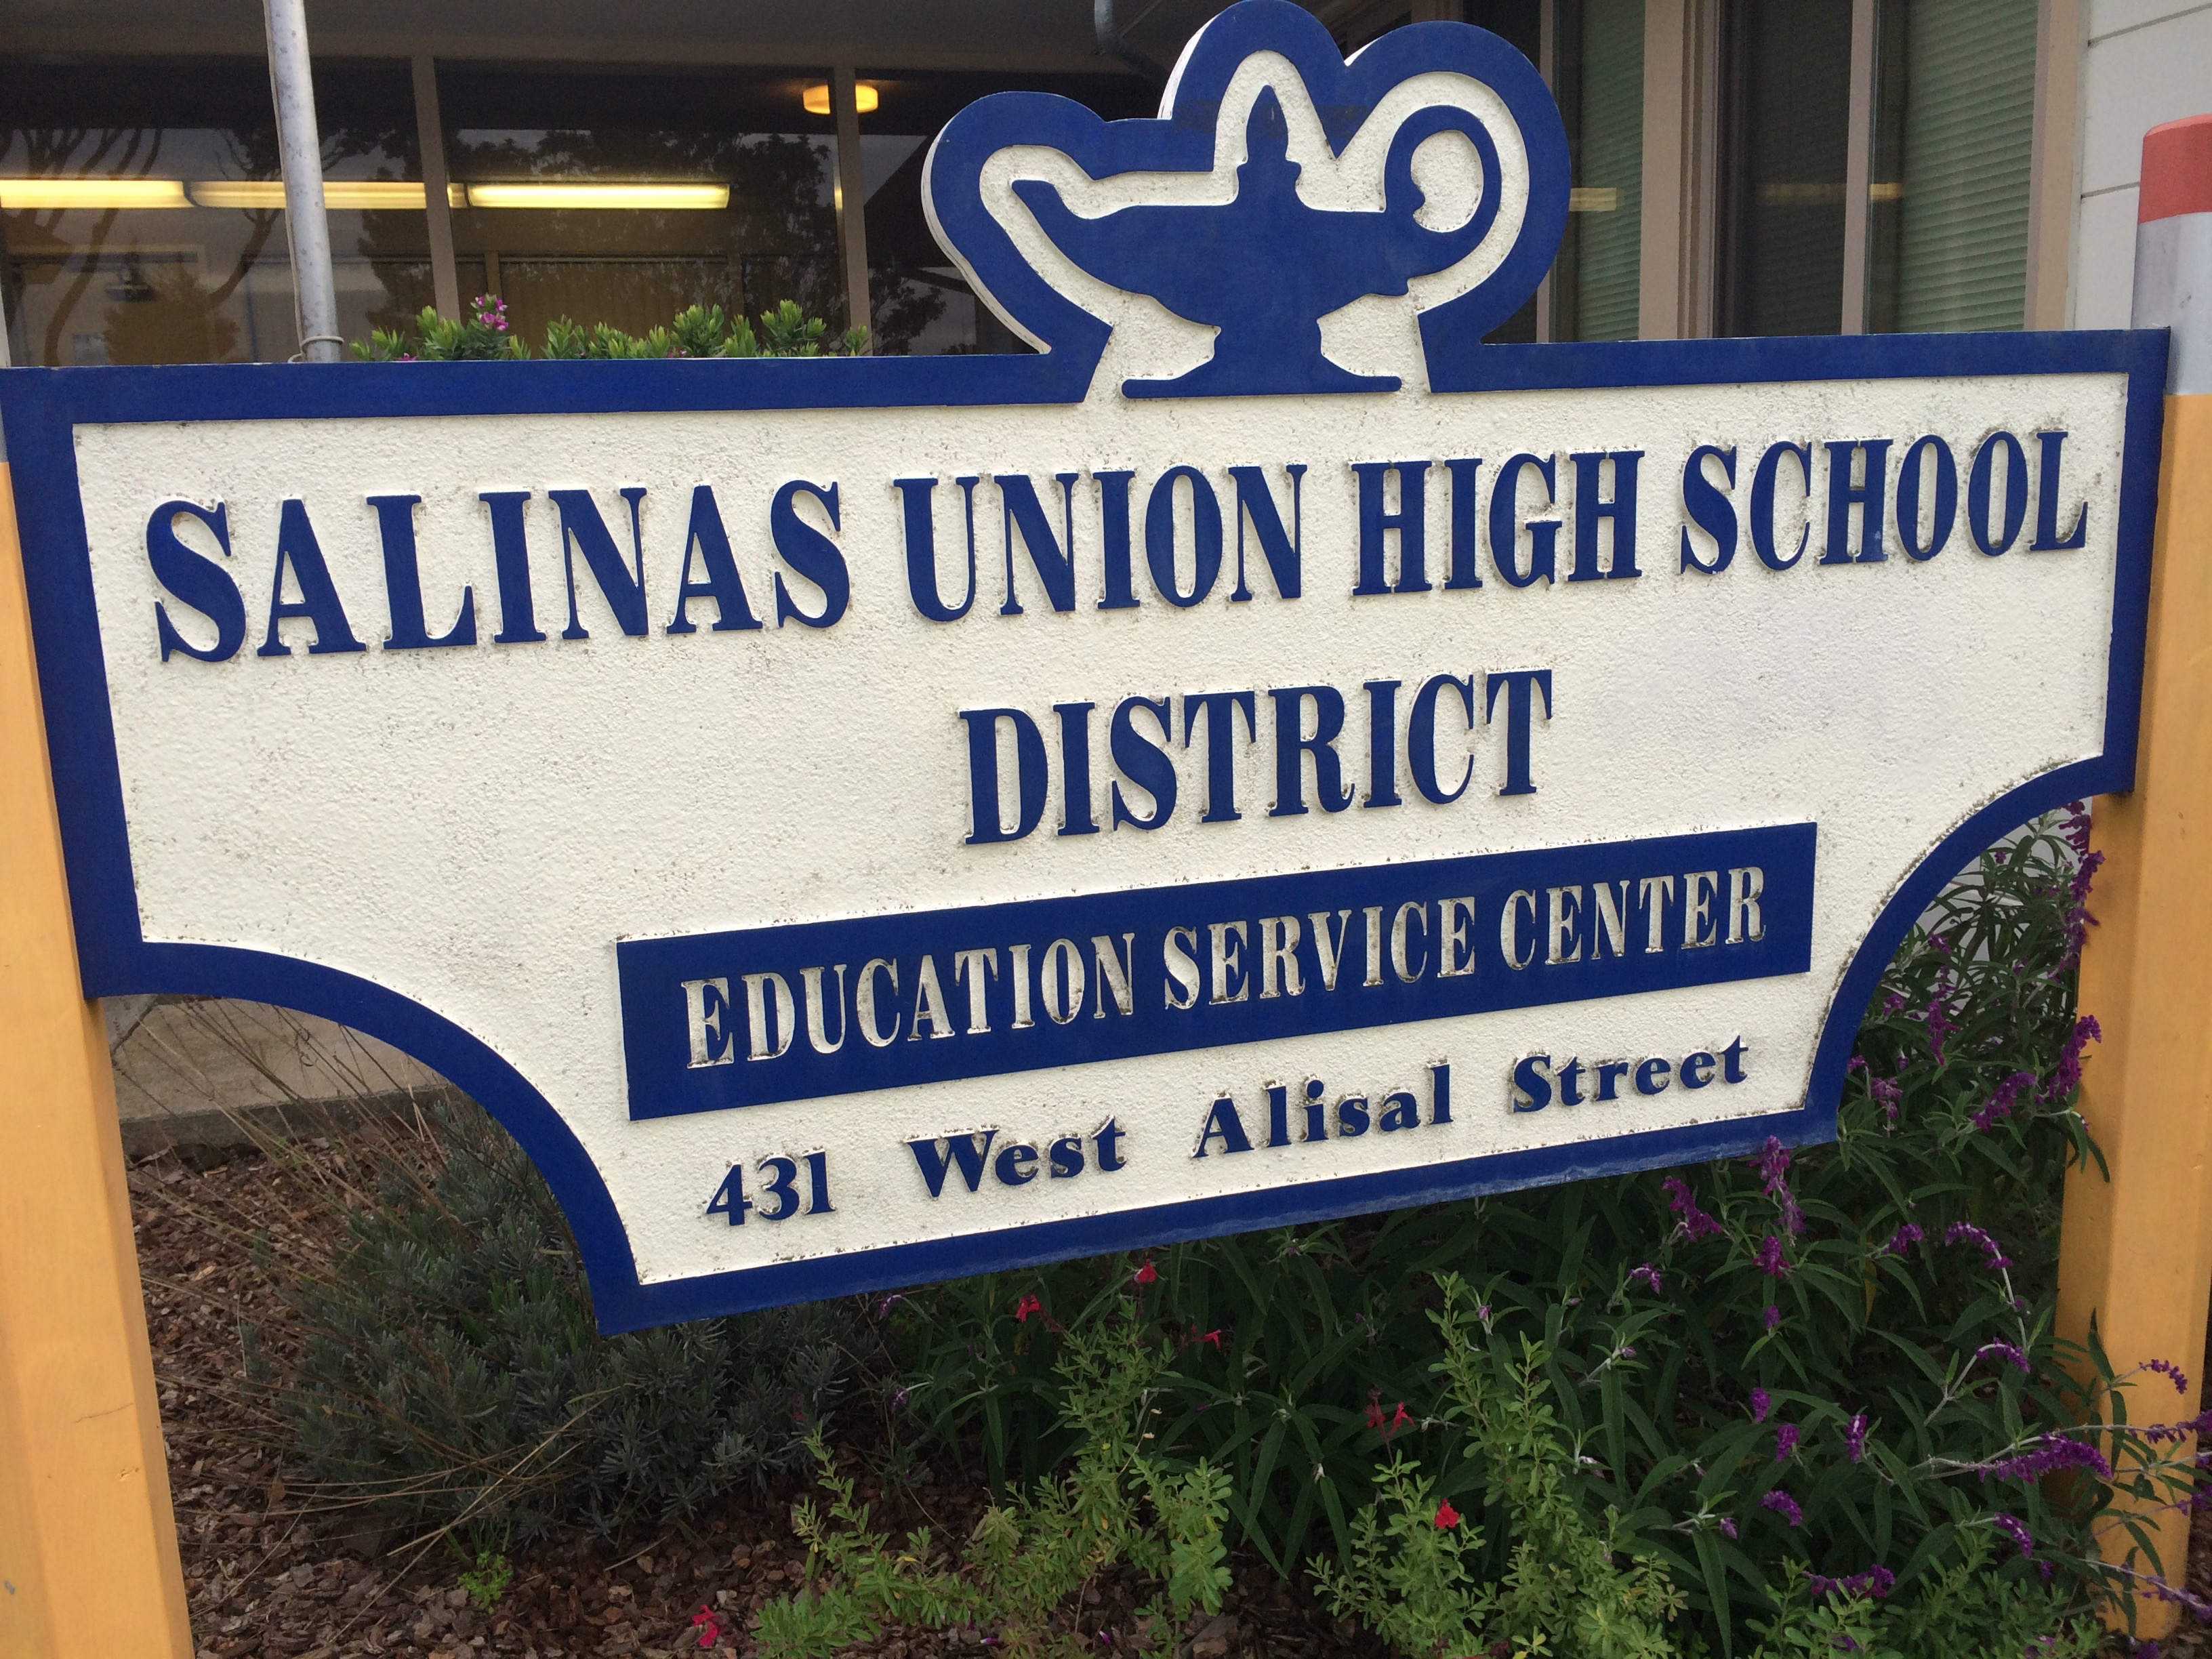 Annual Audit Reports for Salinas Union High School District – 2015 ...